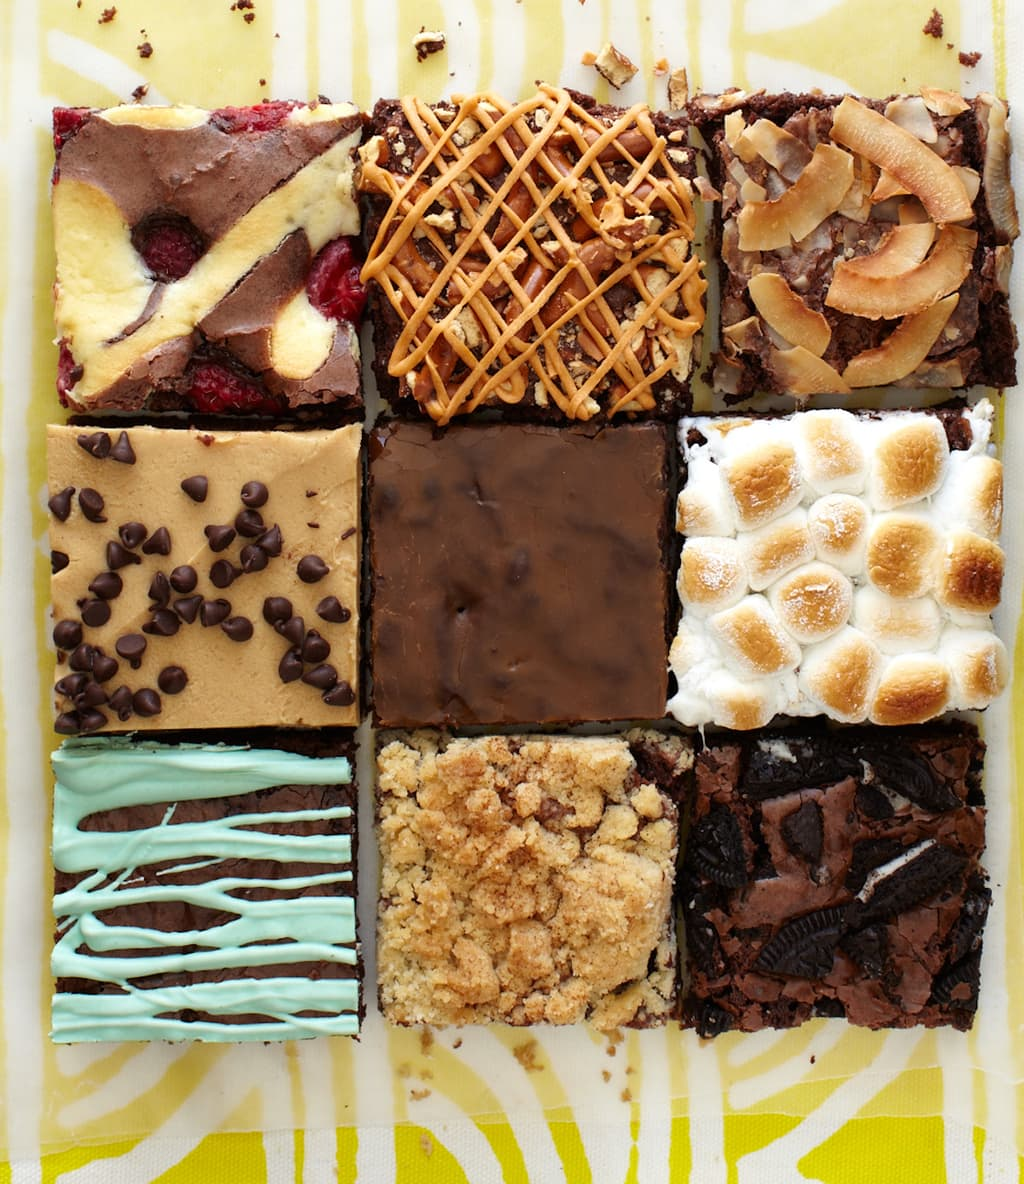 Variety of Brownie flavors on a yellow paper